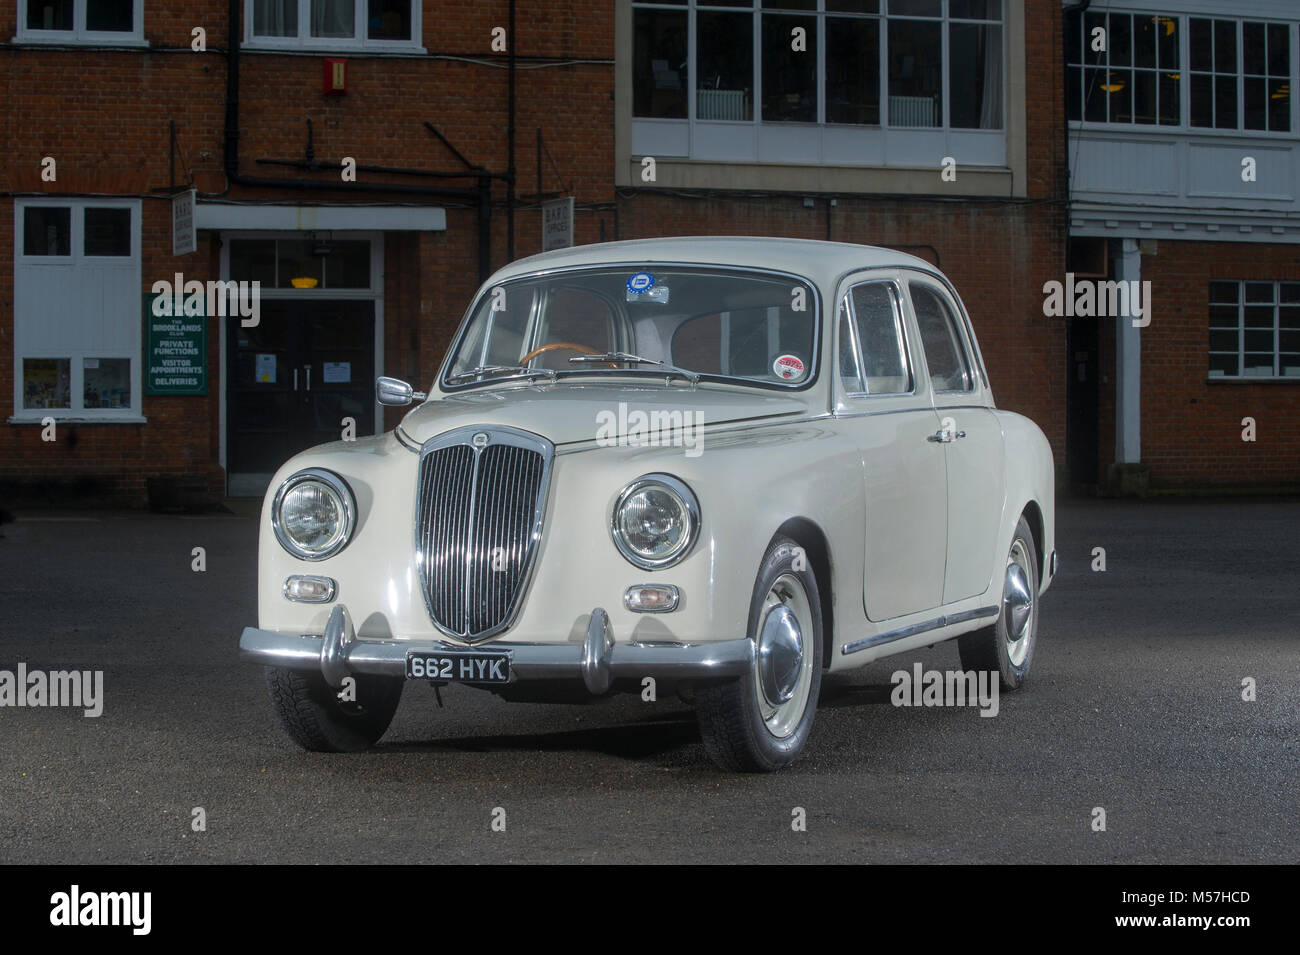 1956 Lancia Appia classic Italian sports saloon, with a monocoque body and suicide doors - Stock Image